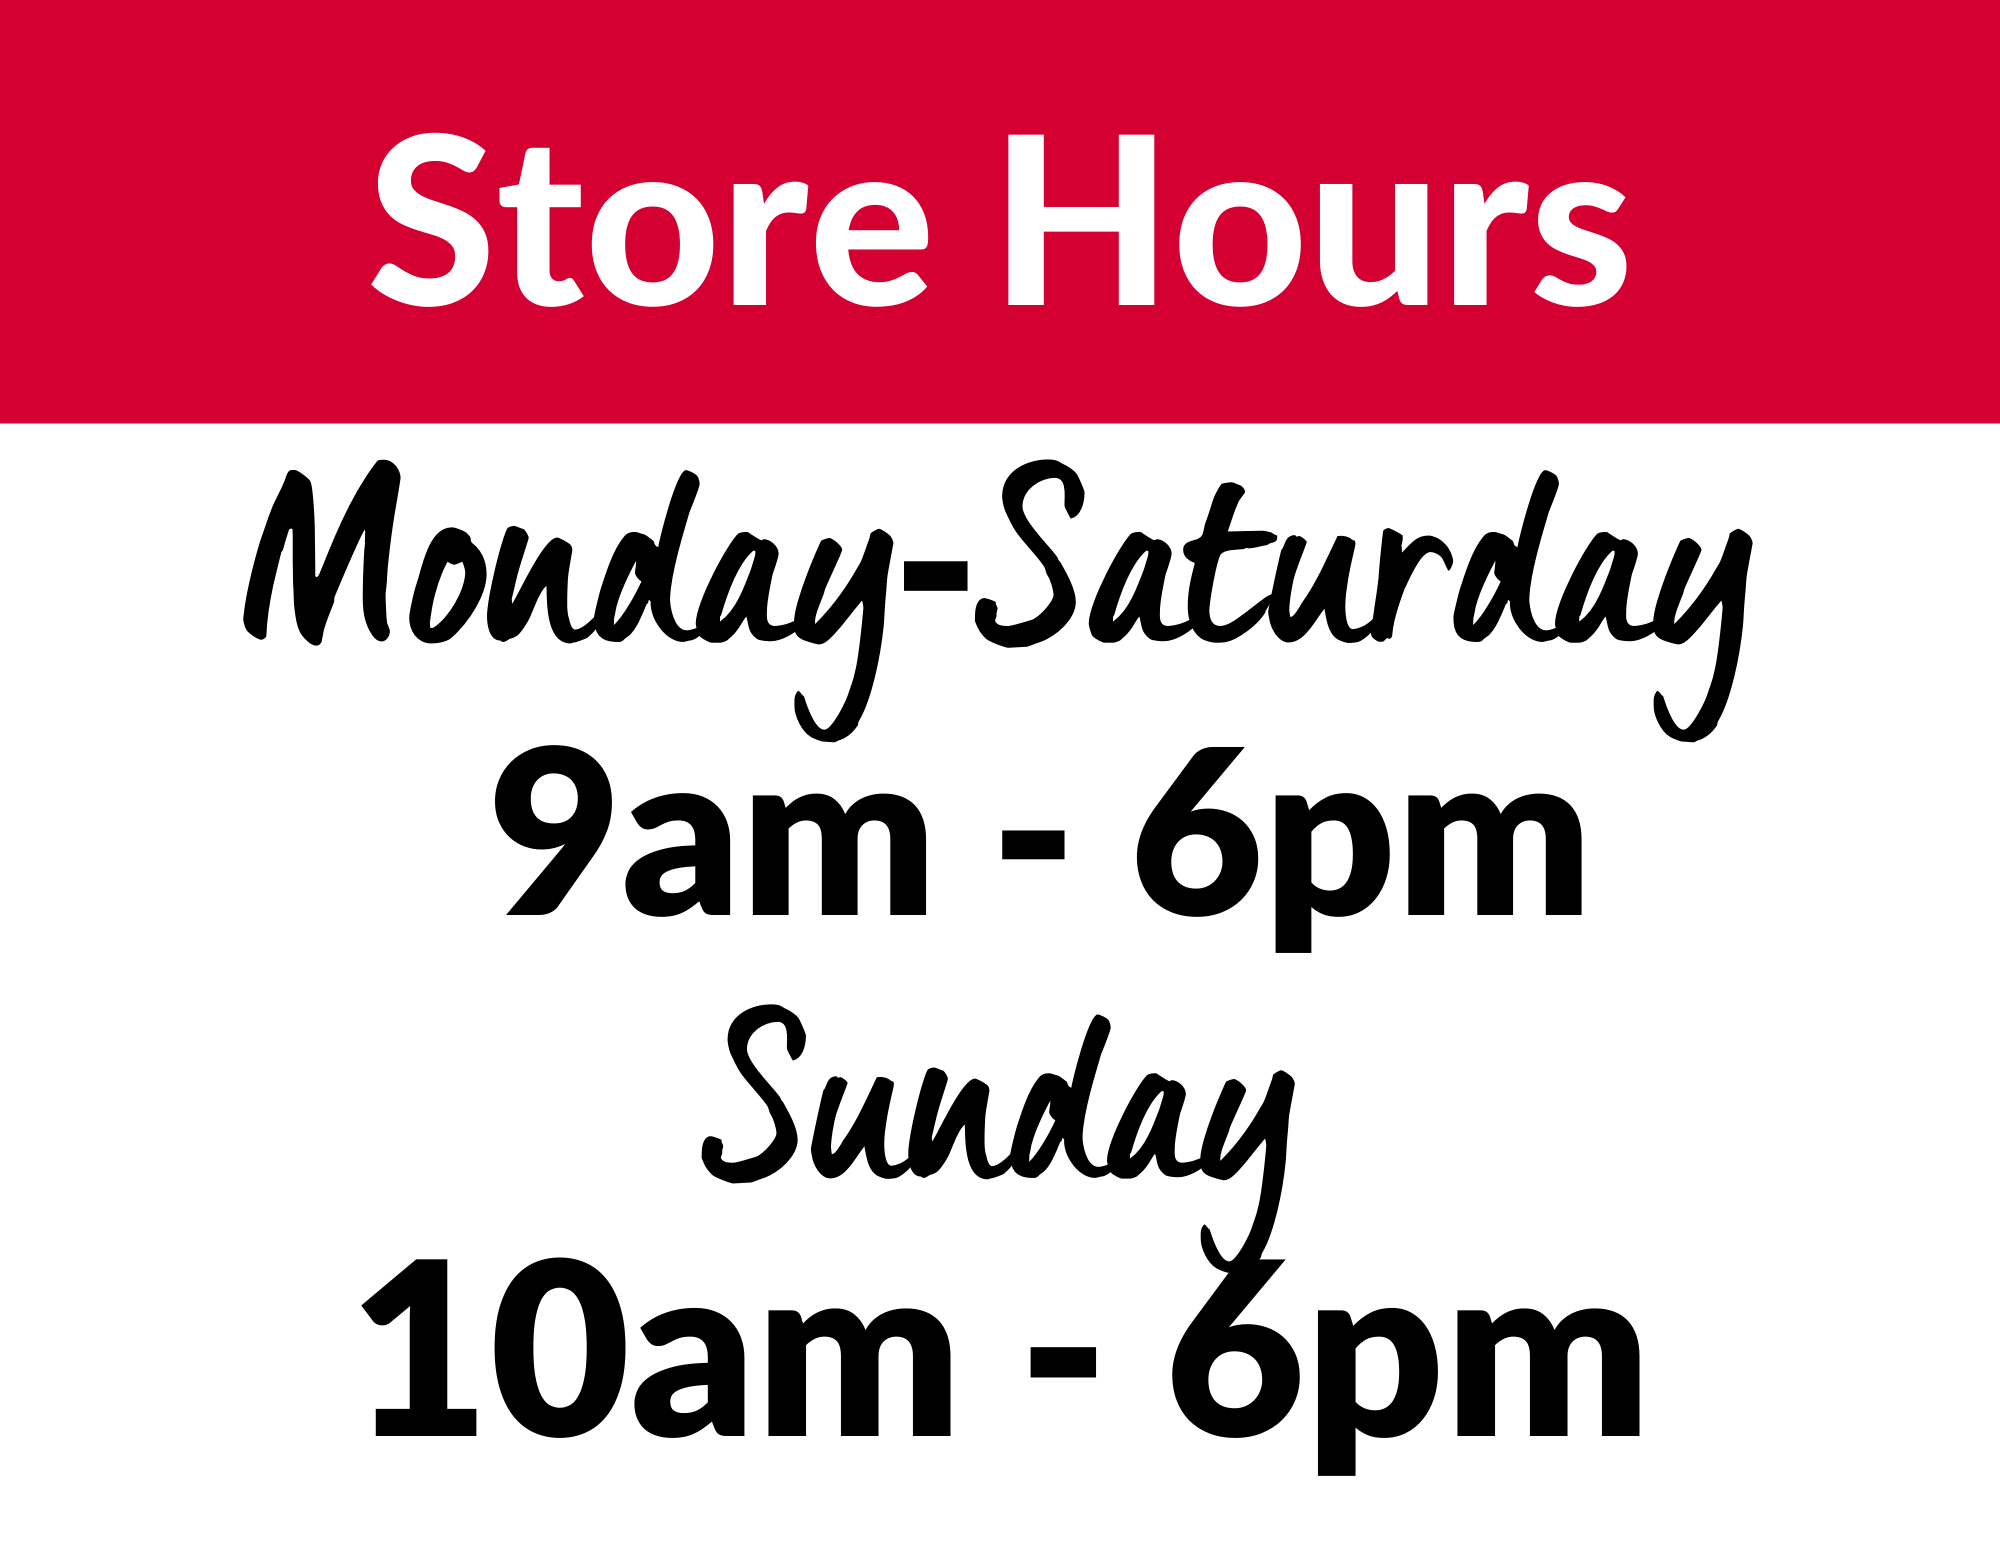 Store Hours 9am-6pm  Sunday 10am-6pm